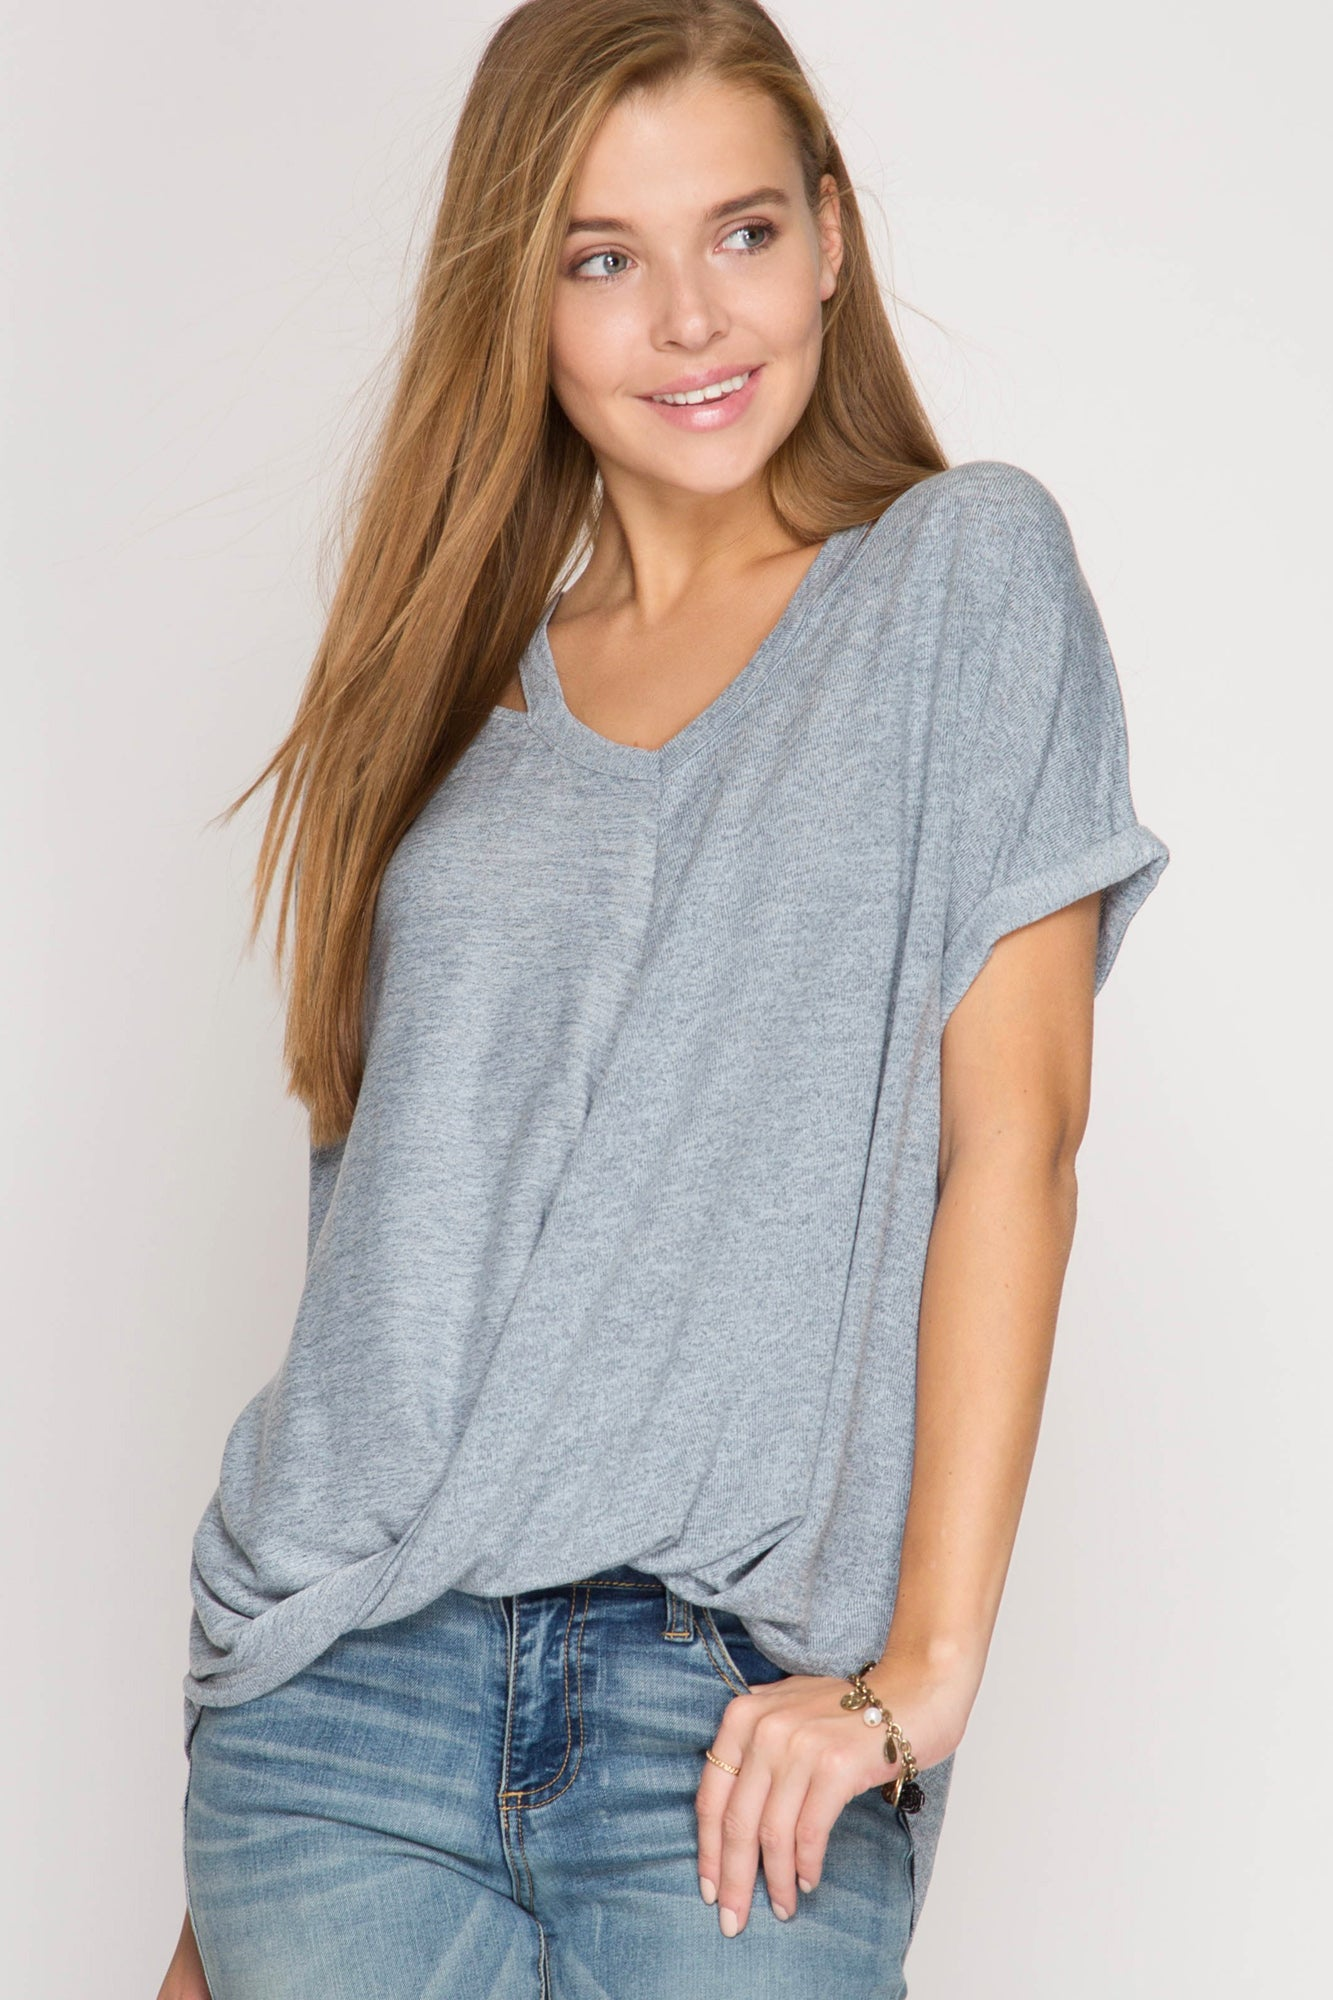 SS Top w/Neck Cut Outs